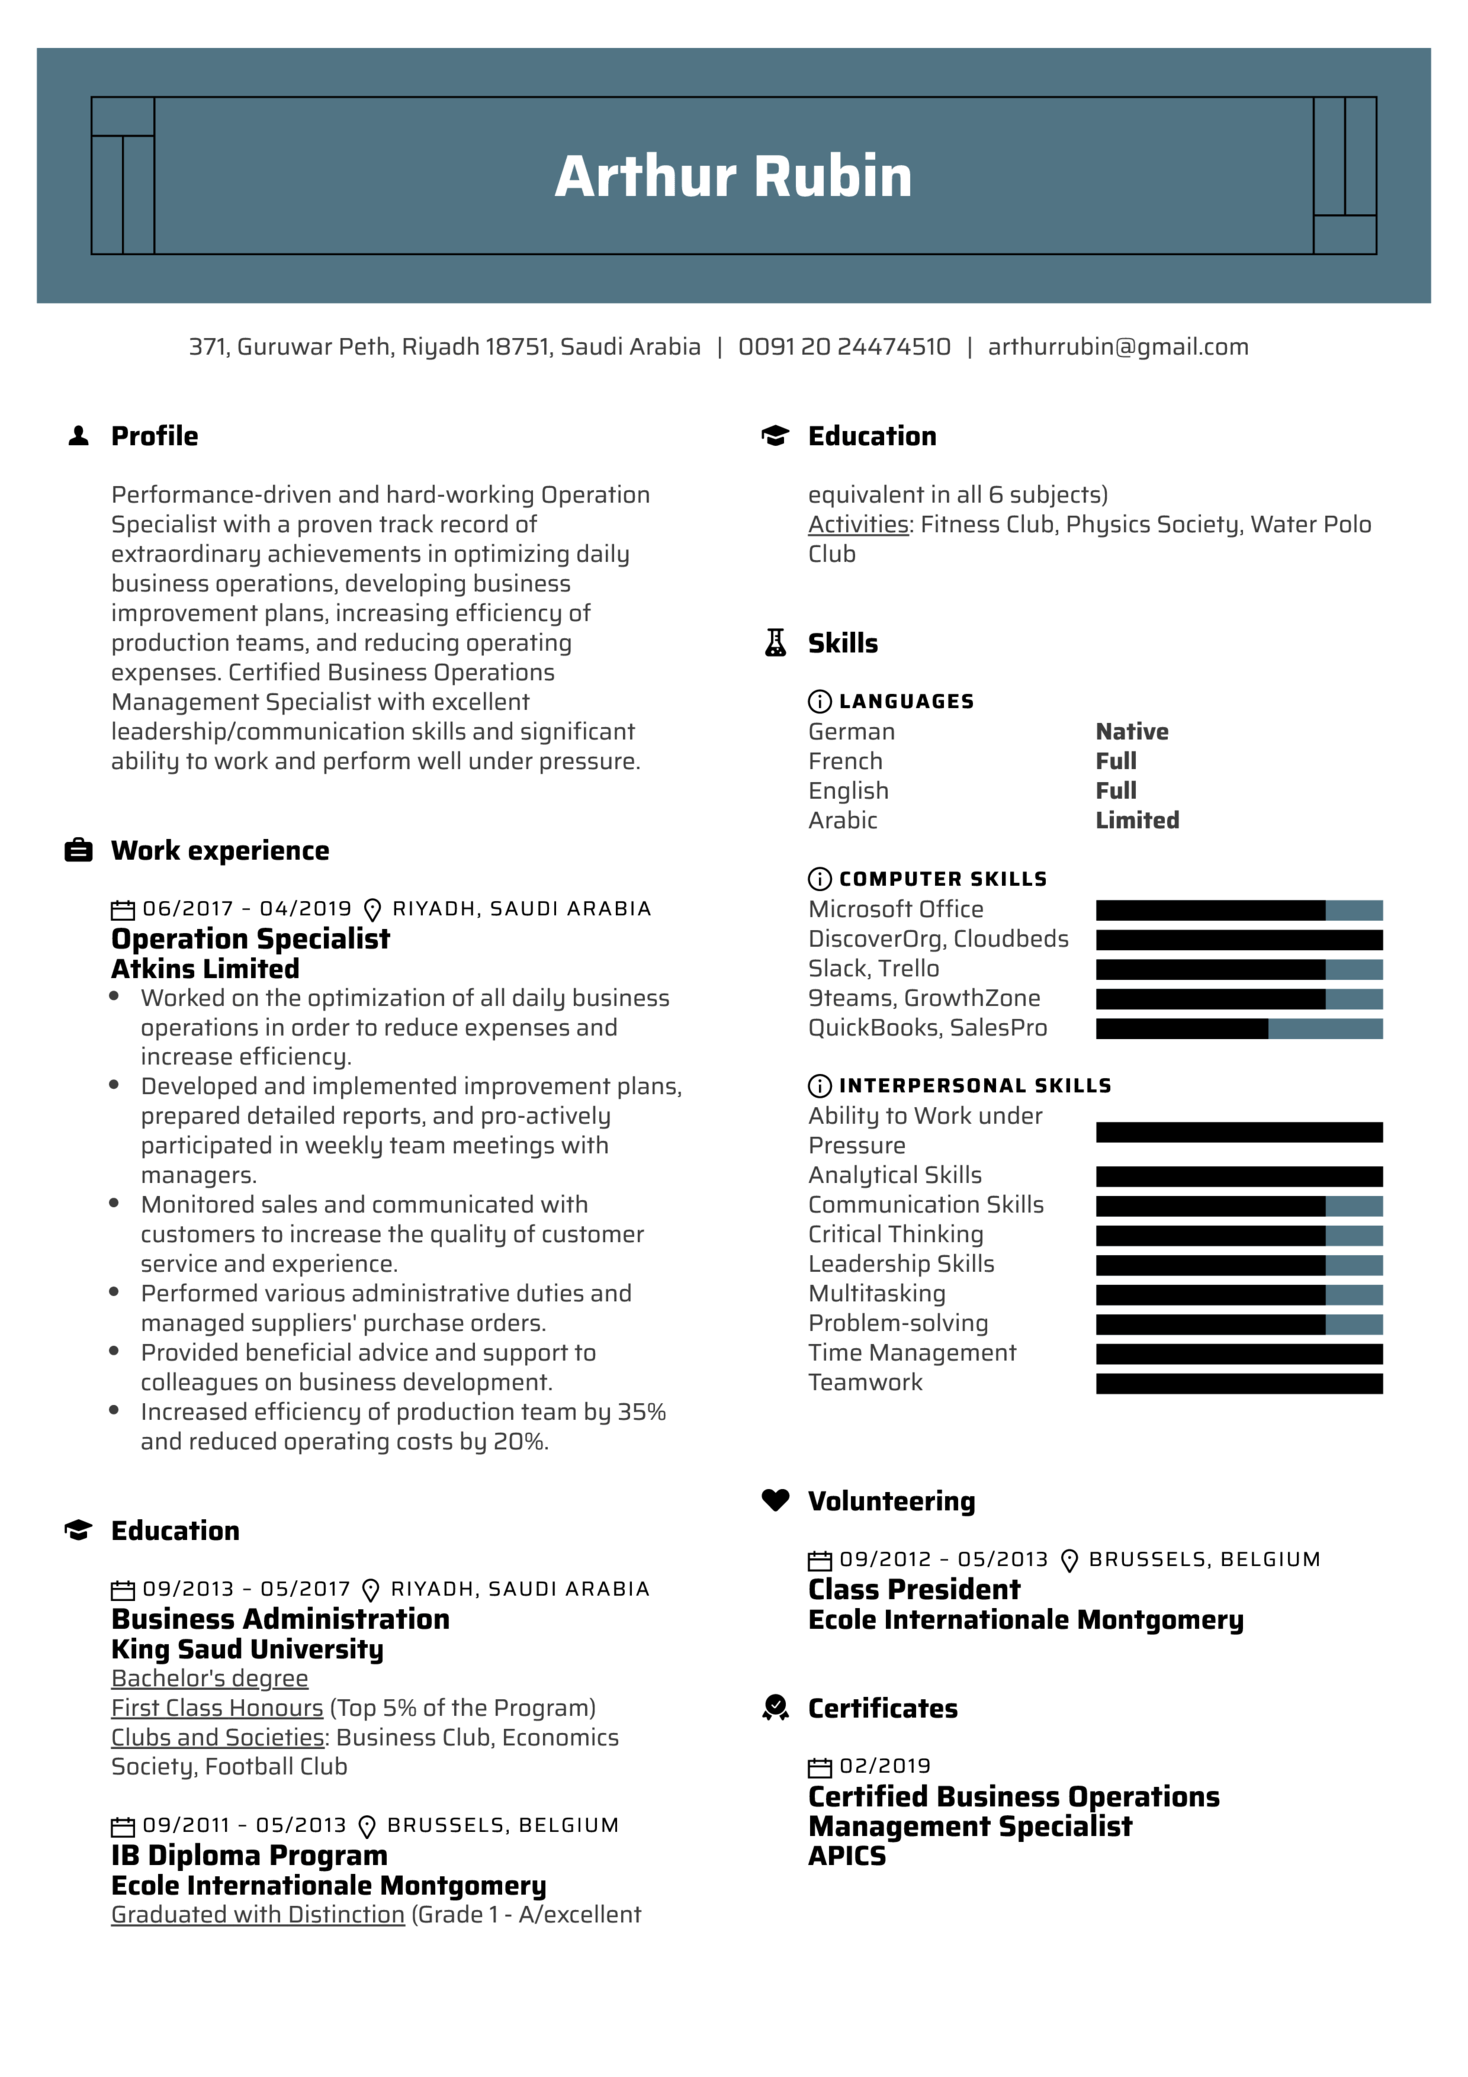 Operation Specialist Resume Example (Part 1)